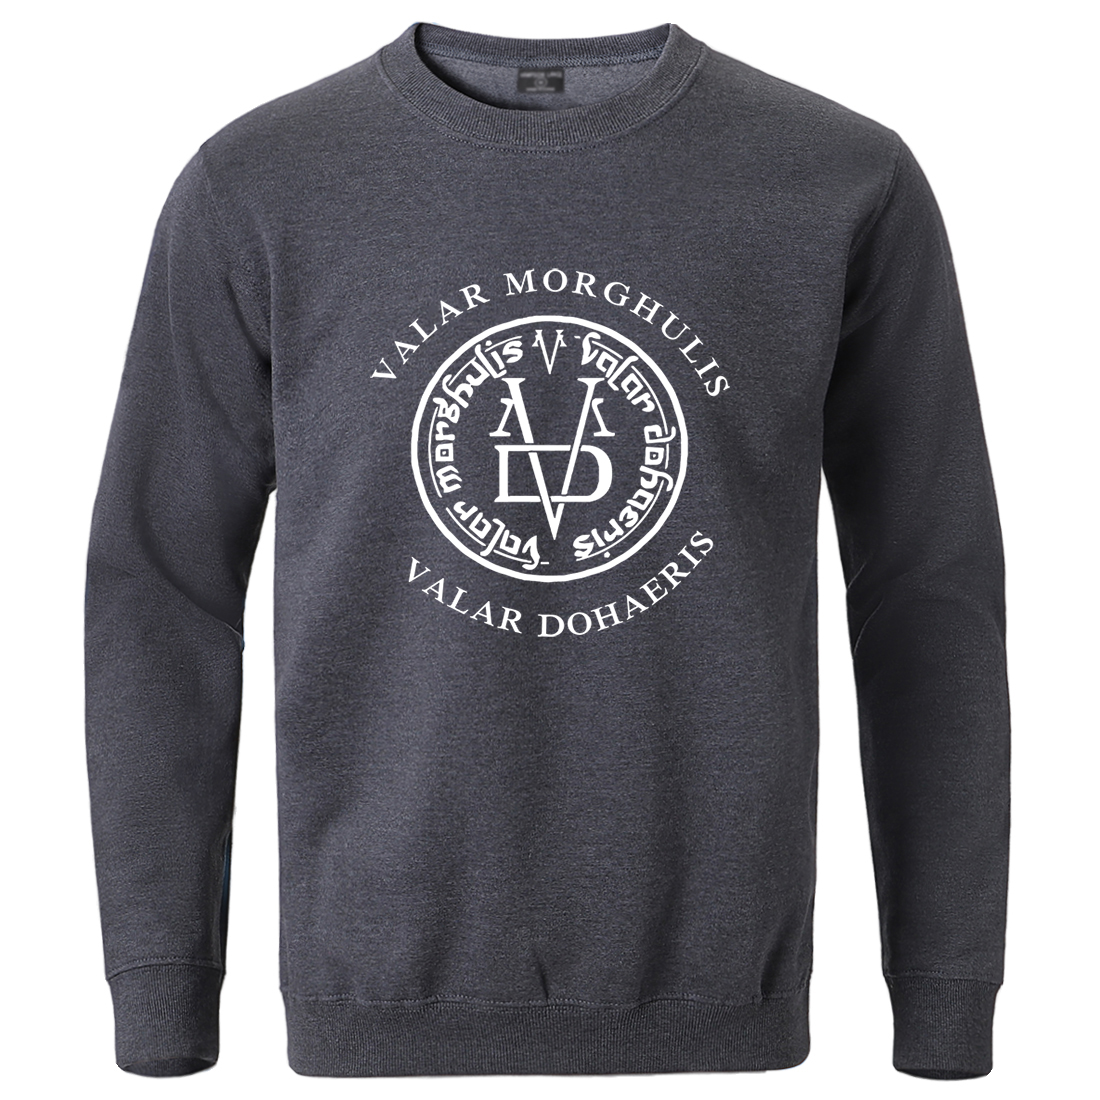 Game Of Thrones Winter Sweatshirt For Man 2020 Male Valar Morghulis Valar Dohaeris Hoodie Streetwear Fashion Cotton Crewneck Top